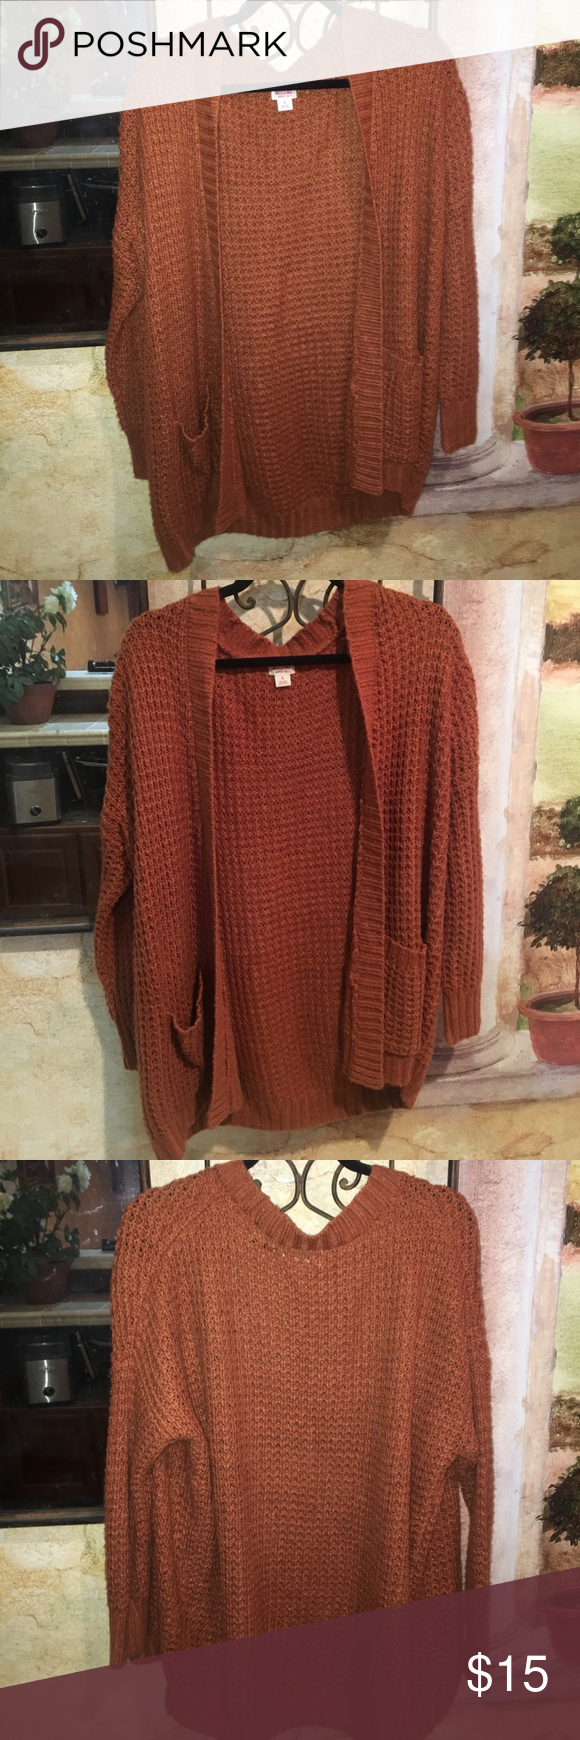 Burnt orange knit cardigan with pockets | D, Sweater cardigan and ...